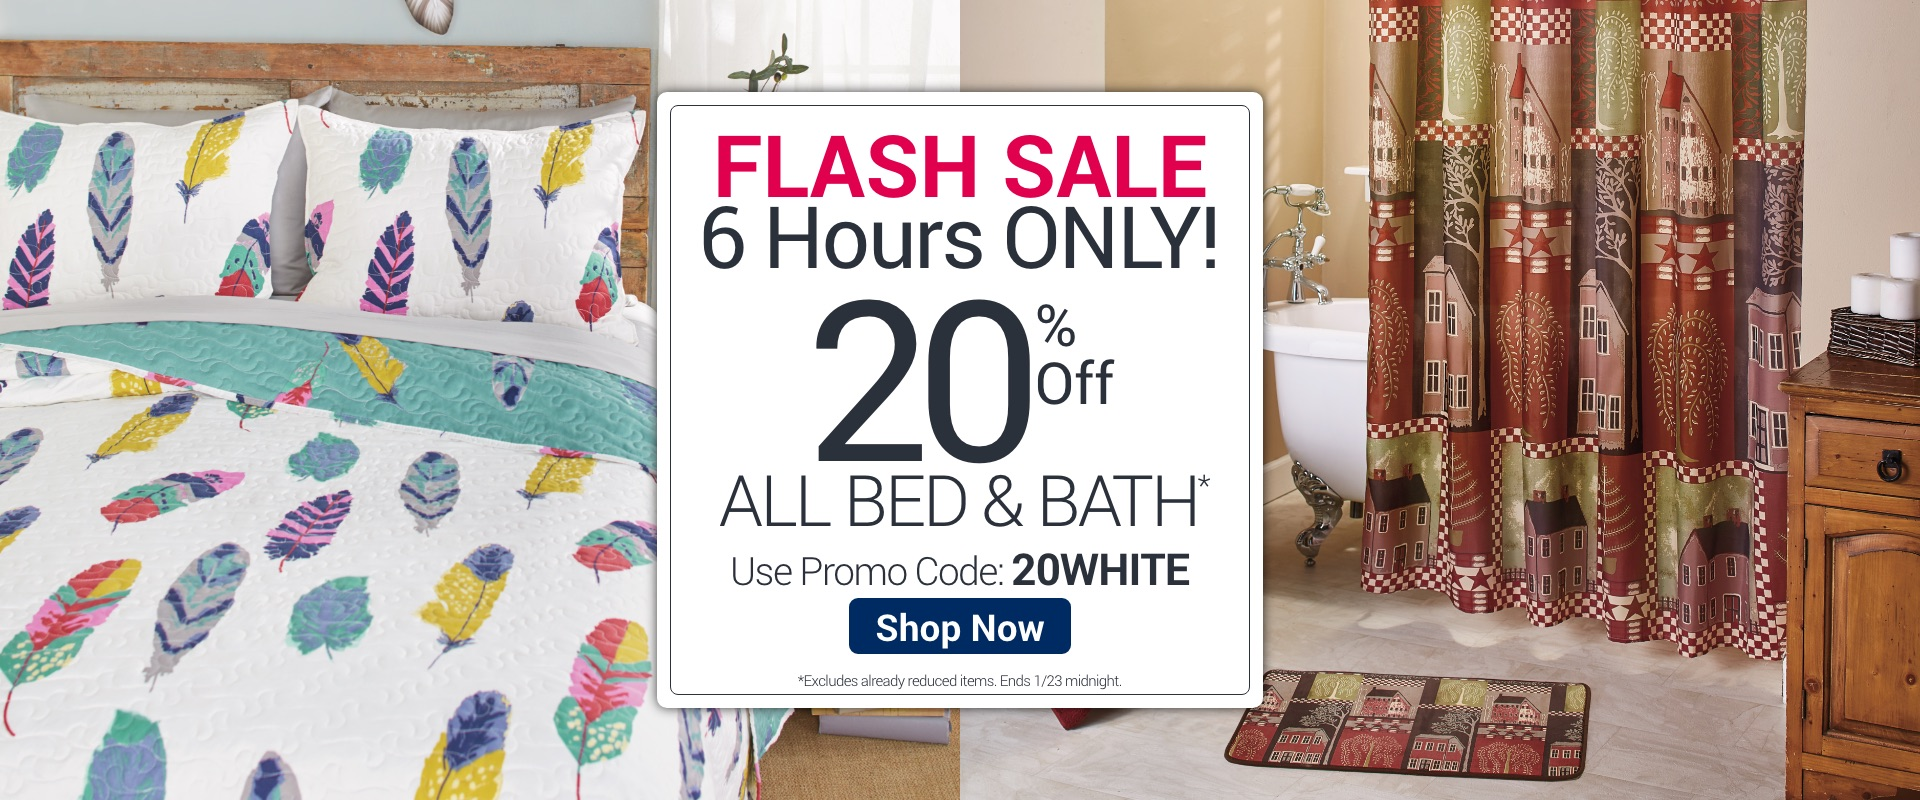 Flash Sale up to 20% off All Bed & Bath. Shop now.